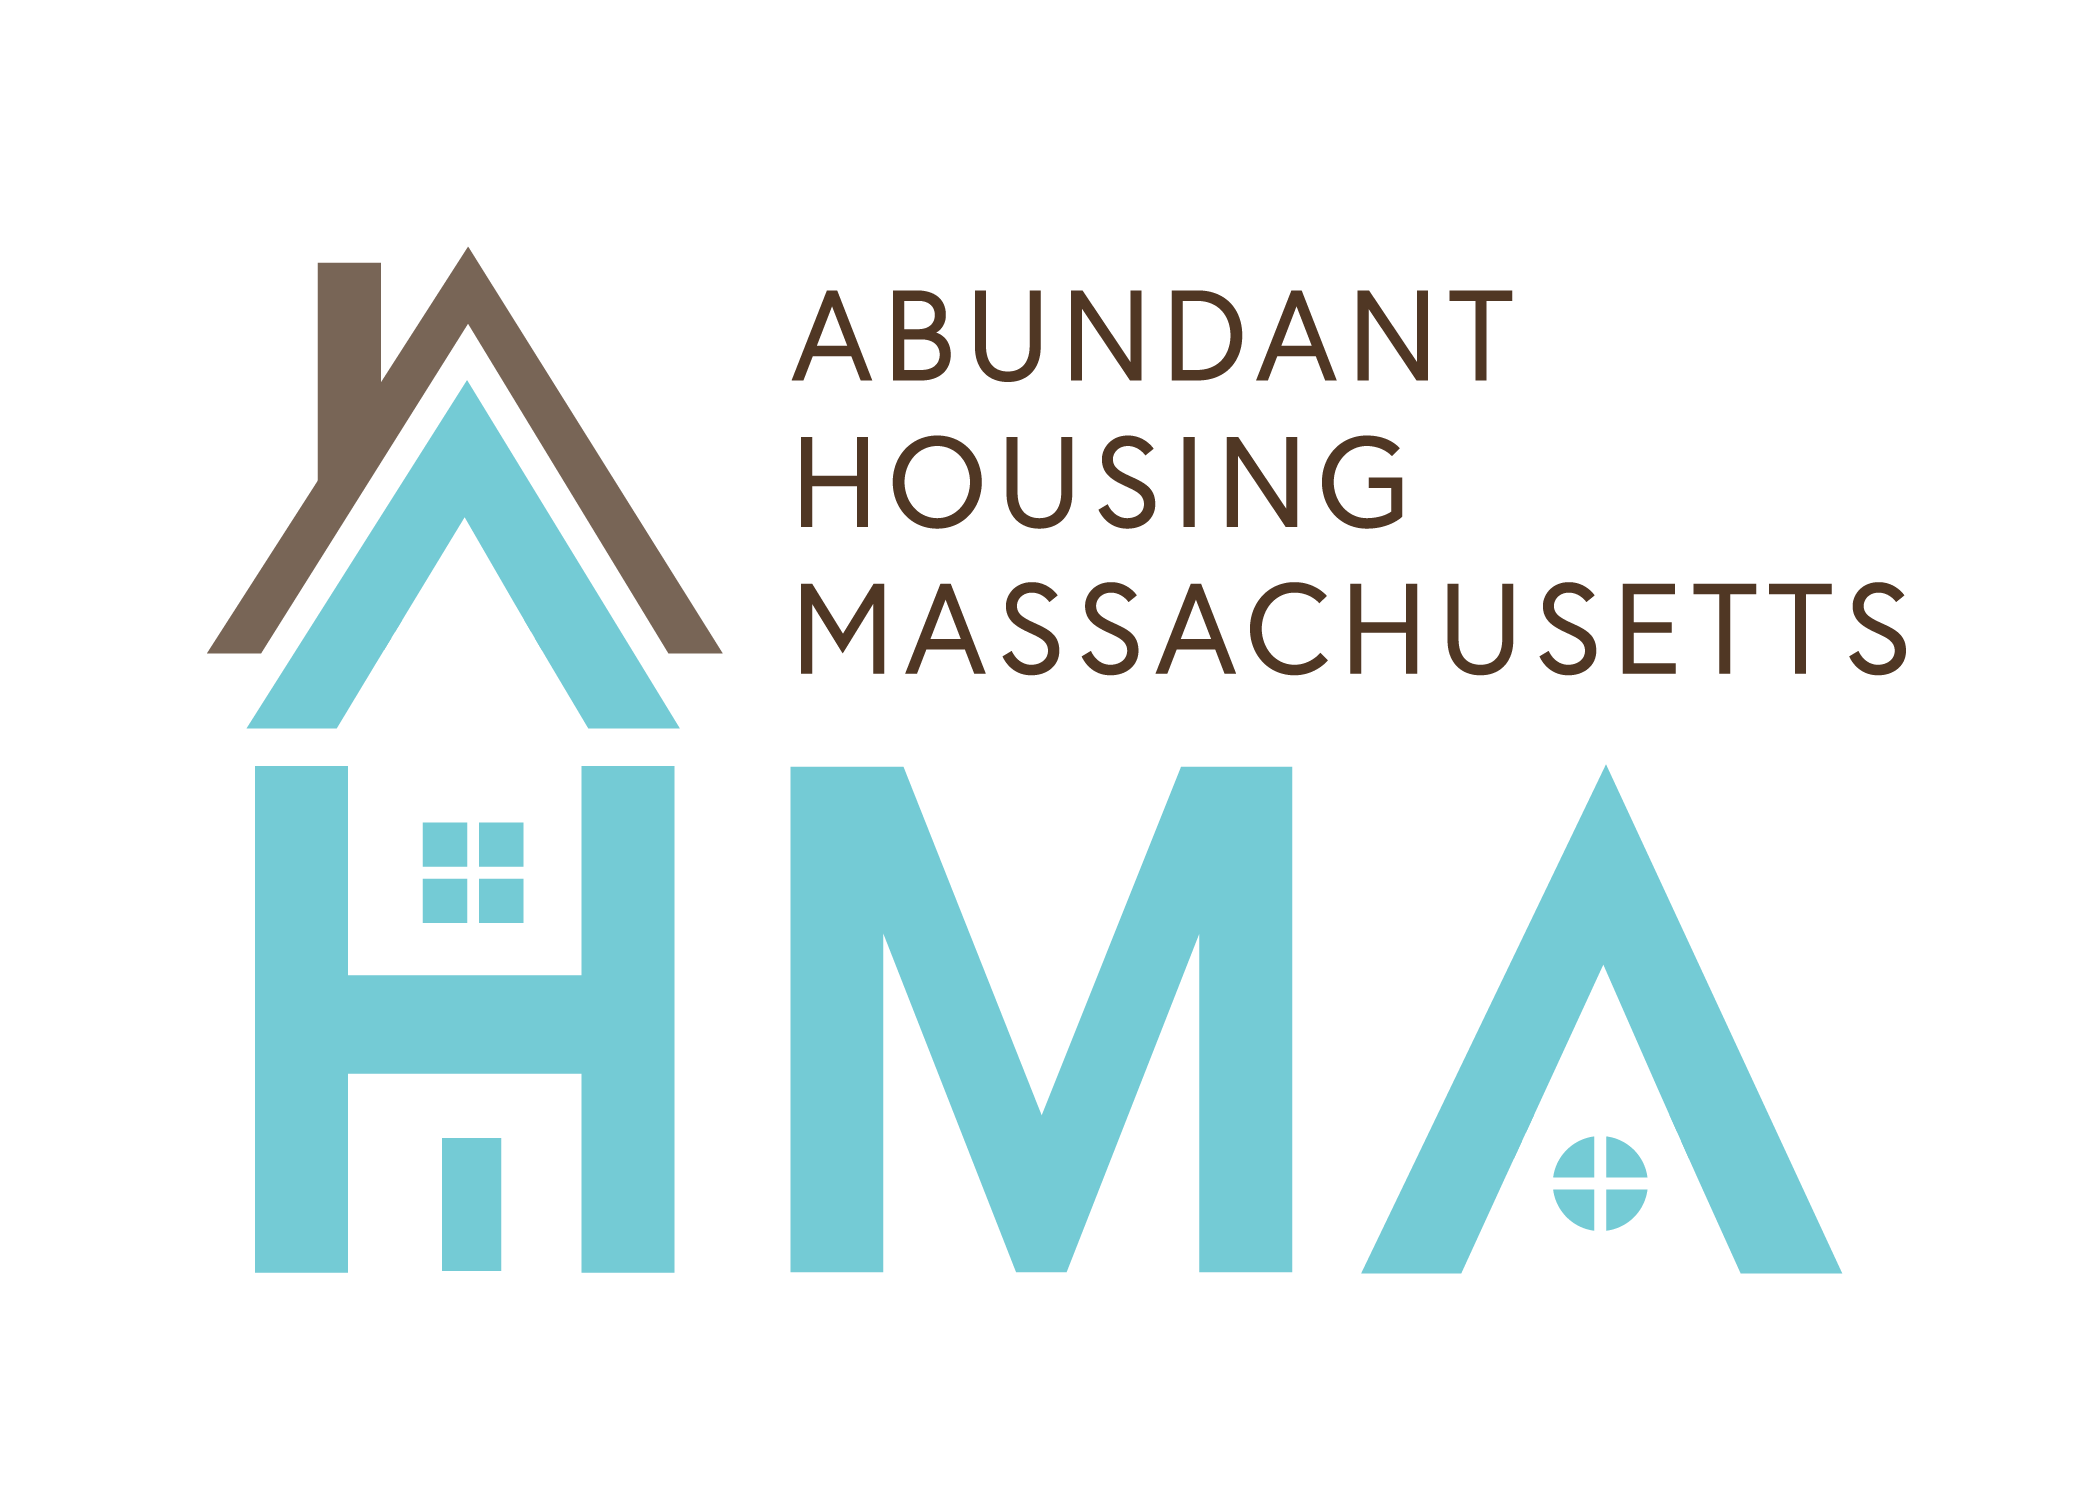 Abundant Housing Massachusetts